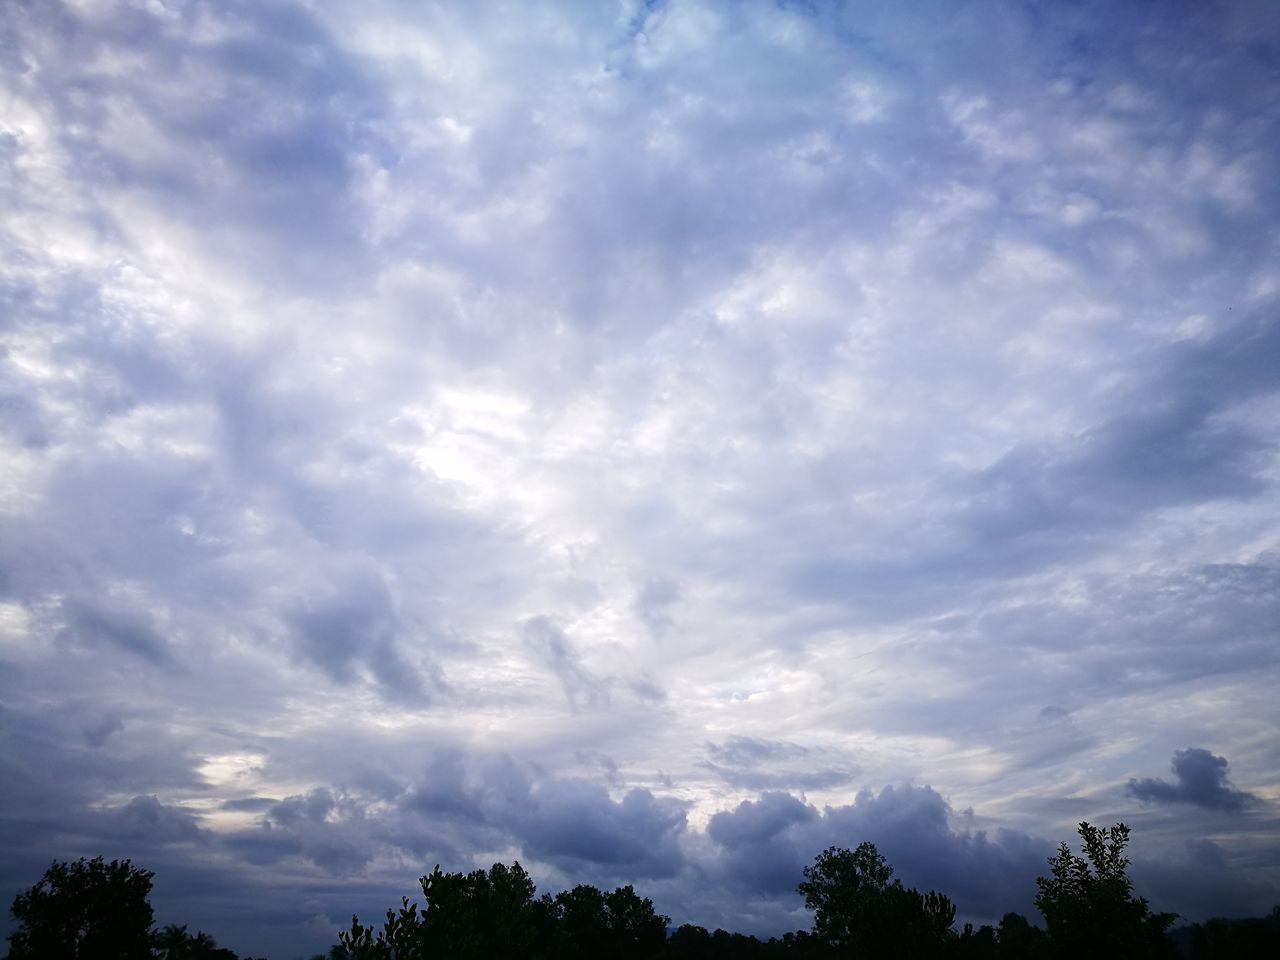 sky, beauty in nature, nature, cloud - sky, low angle view, tranquility, scenics, tree, no people, tranquil scene, day, outdoors, blue